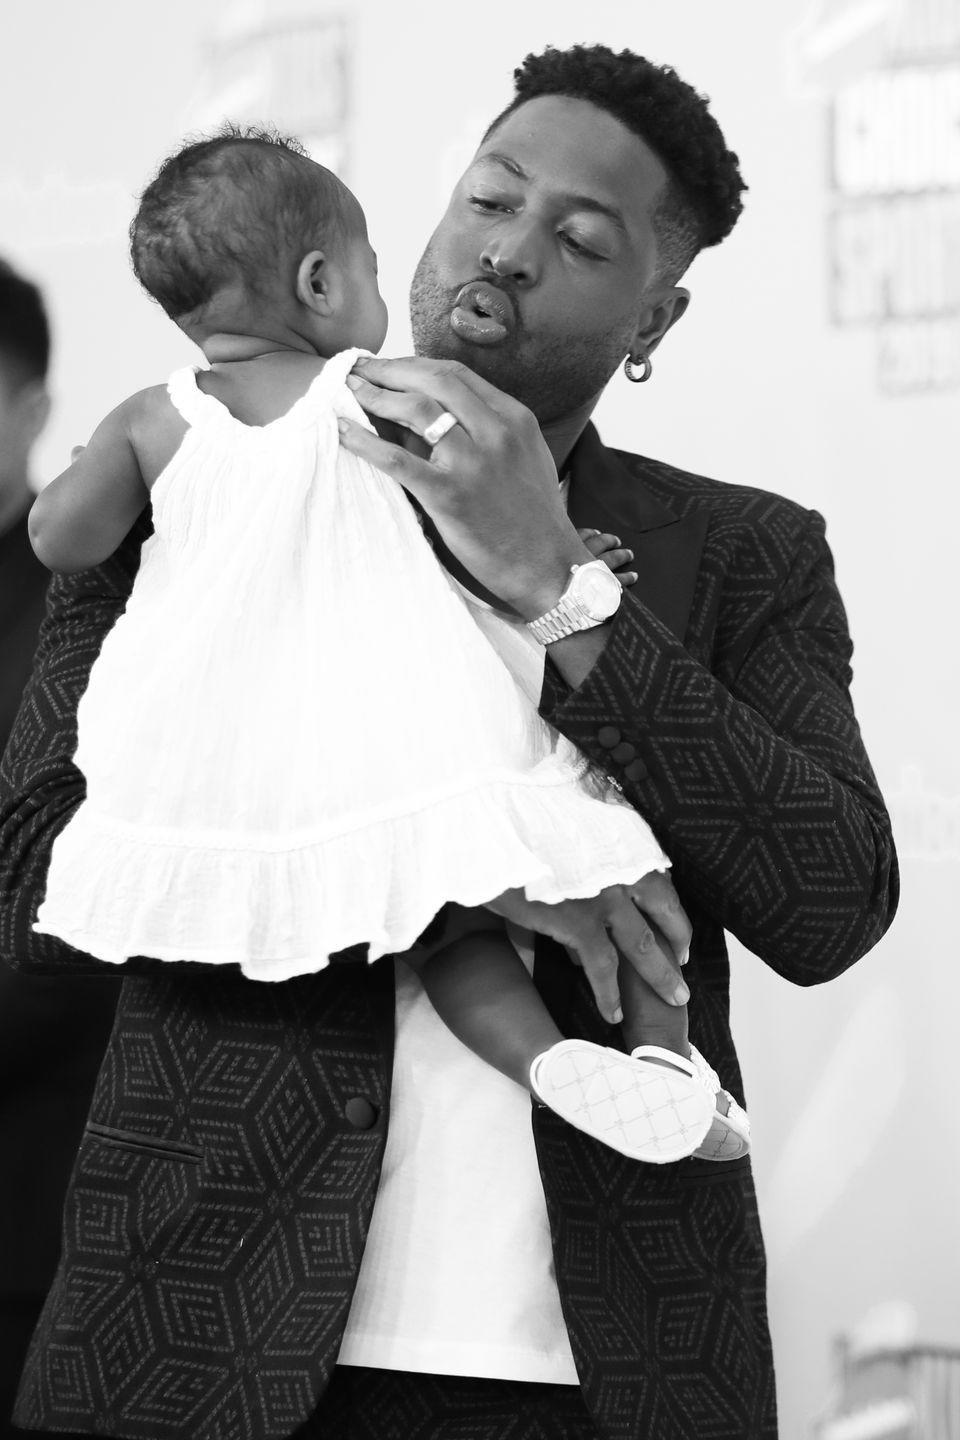 """<p><strong>Children</strong>: Zaire Blessing Dwyane Wade (18), Dahveon Morris (Wade's nephew who he has custody of, 18), <a href=""""https://www.oprahmag.com/entertainment/a31280556/dwyane-wade-gabrielle-union-daughter-zaya-red-carpet-debut/"""" rel=""""nofollow noopener"""" target=""""_blank"""" data-ylk=""""slk:Zaya Wade"""" class=""""link rapid-noclick-resp"""">Zaya Wade</a> (13), Xavier Zechariah Wade (6), <a href=""""https://www.oprahmag.com/entertainment/a29729449/gabrielle-union-kaavia-james-first-birthday-video-montage/"""" rel=""""nofollow noopener"""" target=""""_blank"""" data-ylk=""""slk:Kaavia James Union Wade"""" class=""""link rapid-noclick-resp"""">Kaavia James Union Wade</a> (1)</p><p>The former NBA star is busy raising <a href=""""https://www.oprahmag.com/entertainment/a29536479/gabrielle-union-dwyane-wade-kids/"""" rel=""""nofollow noopener"""" target=""""_blank"""" data-ylk=""""slk:4 biological children along with his nephew Dahveon"""" class=""""link rapid-noclick-resp"""">4 biological children along with his nephew Dahveon</a>, who he has custody of. He welcomed <a href=""""https://www.oprahmag.com/entertainment/a25238335/gabrielle-union-dwyane-wade-baby-oprah-photo/"""" rel=""""nofollow noopener"""" target=""""_blank"""" data-ylk=""""slk:his youngest, Kaavia James"""" class=""""link rapid-noclick-resp"""">his youngest, Kaavia James</a>, in 2018 with longtime partner <a href=""""https://www.oprahmag.com/life/relationships-love/a25444336/gabrielle-union-dwyane-wade-oprah-interview/"""" rel=""""nofollow noopener"""" target=""""_blank"""" data-ylk=""""slk:Gabrielle Union"""" class=""""link rapid-noclick-resp"""">Gabrielle Union</a>, who he <a href=""""https://www.oprahmag.com/entertainment/a27407112/gabrielle-union-and-dwyane-wade-marriage/"""" rel=""""nofollow noopener"""" target=""""_blank"""" data-ylk=""""slk:married in 2014"""" class=""""link rapid-noclick-resp"""">married in 2014</a>. In 2011, <a href=""""https://www.espn.com/blog/truehoop/miamiheat/post/_/id/9472/an-interview-with-dwyane-wade"""" rel=""""nofollow noopener"""" target=""""_blank"""" data-ylk=""""slk:he told ESPN"""" class=""""link rapid-noclick-resp"""">he told ESPN</a>, """"I love bei"""